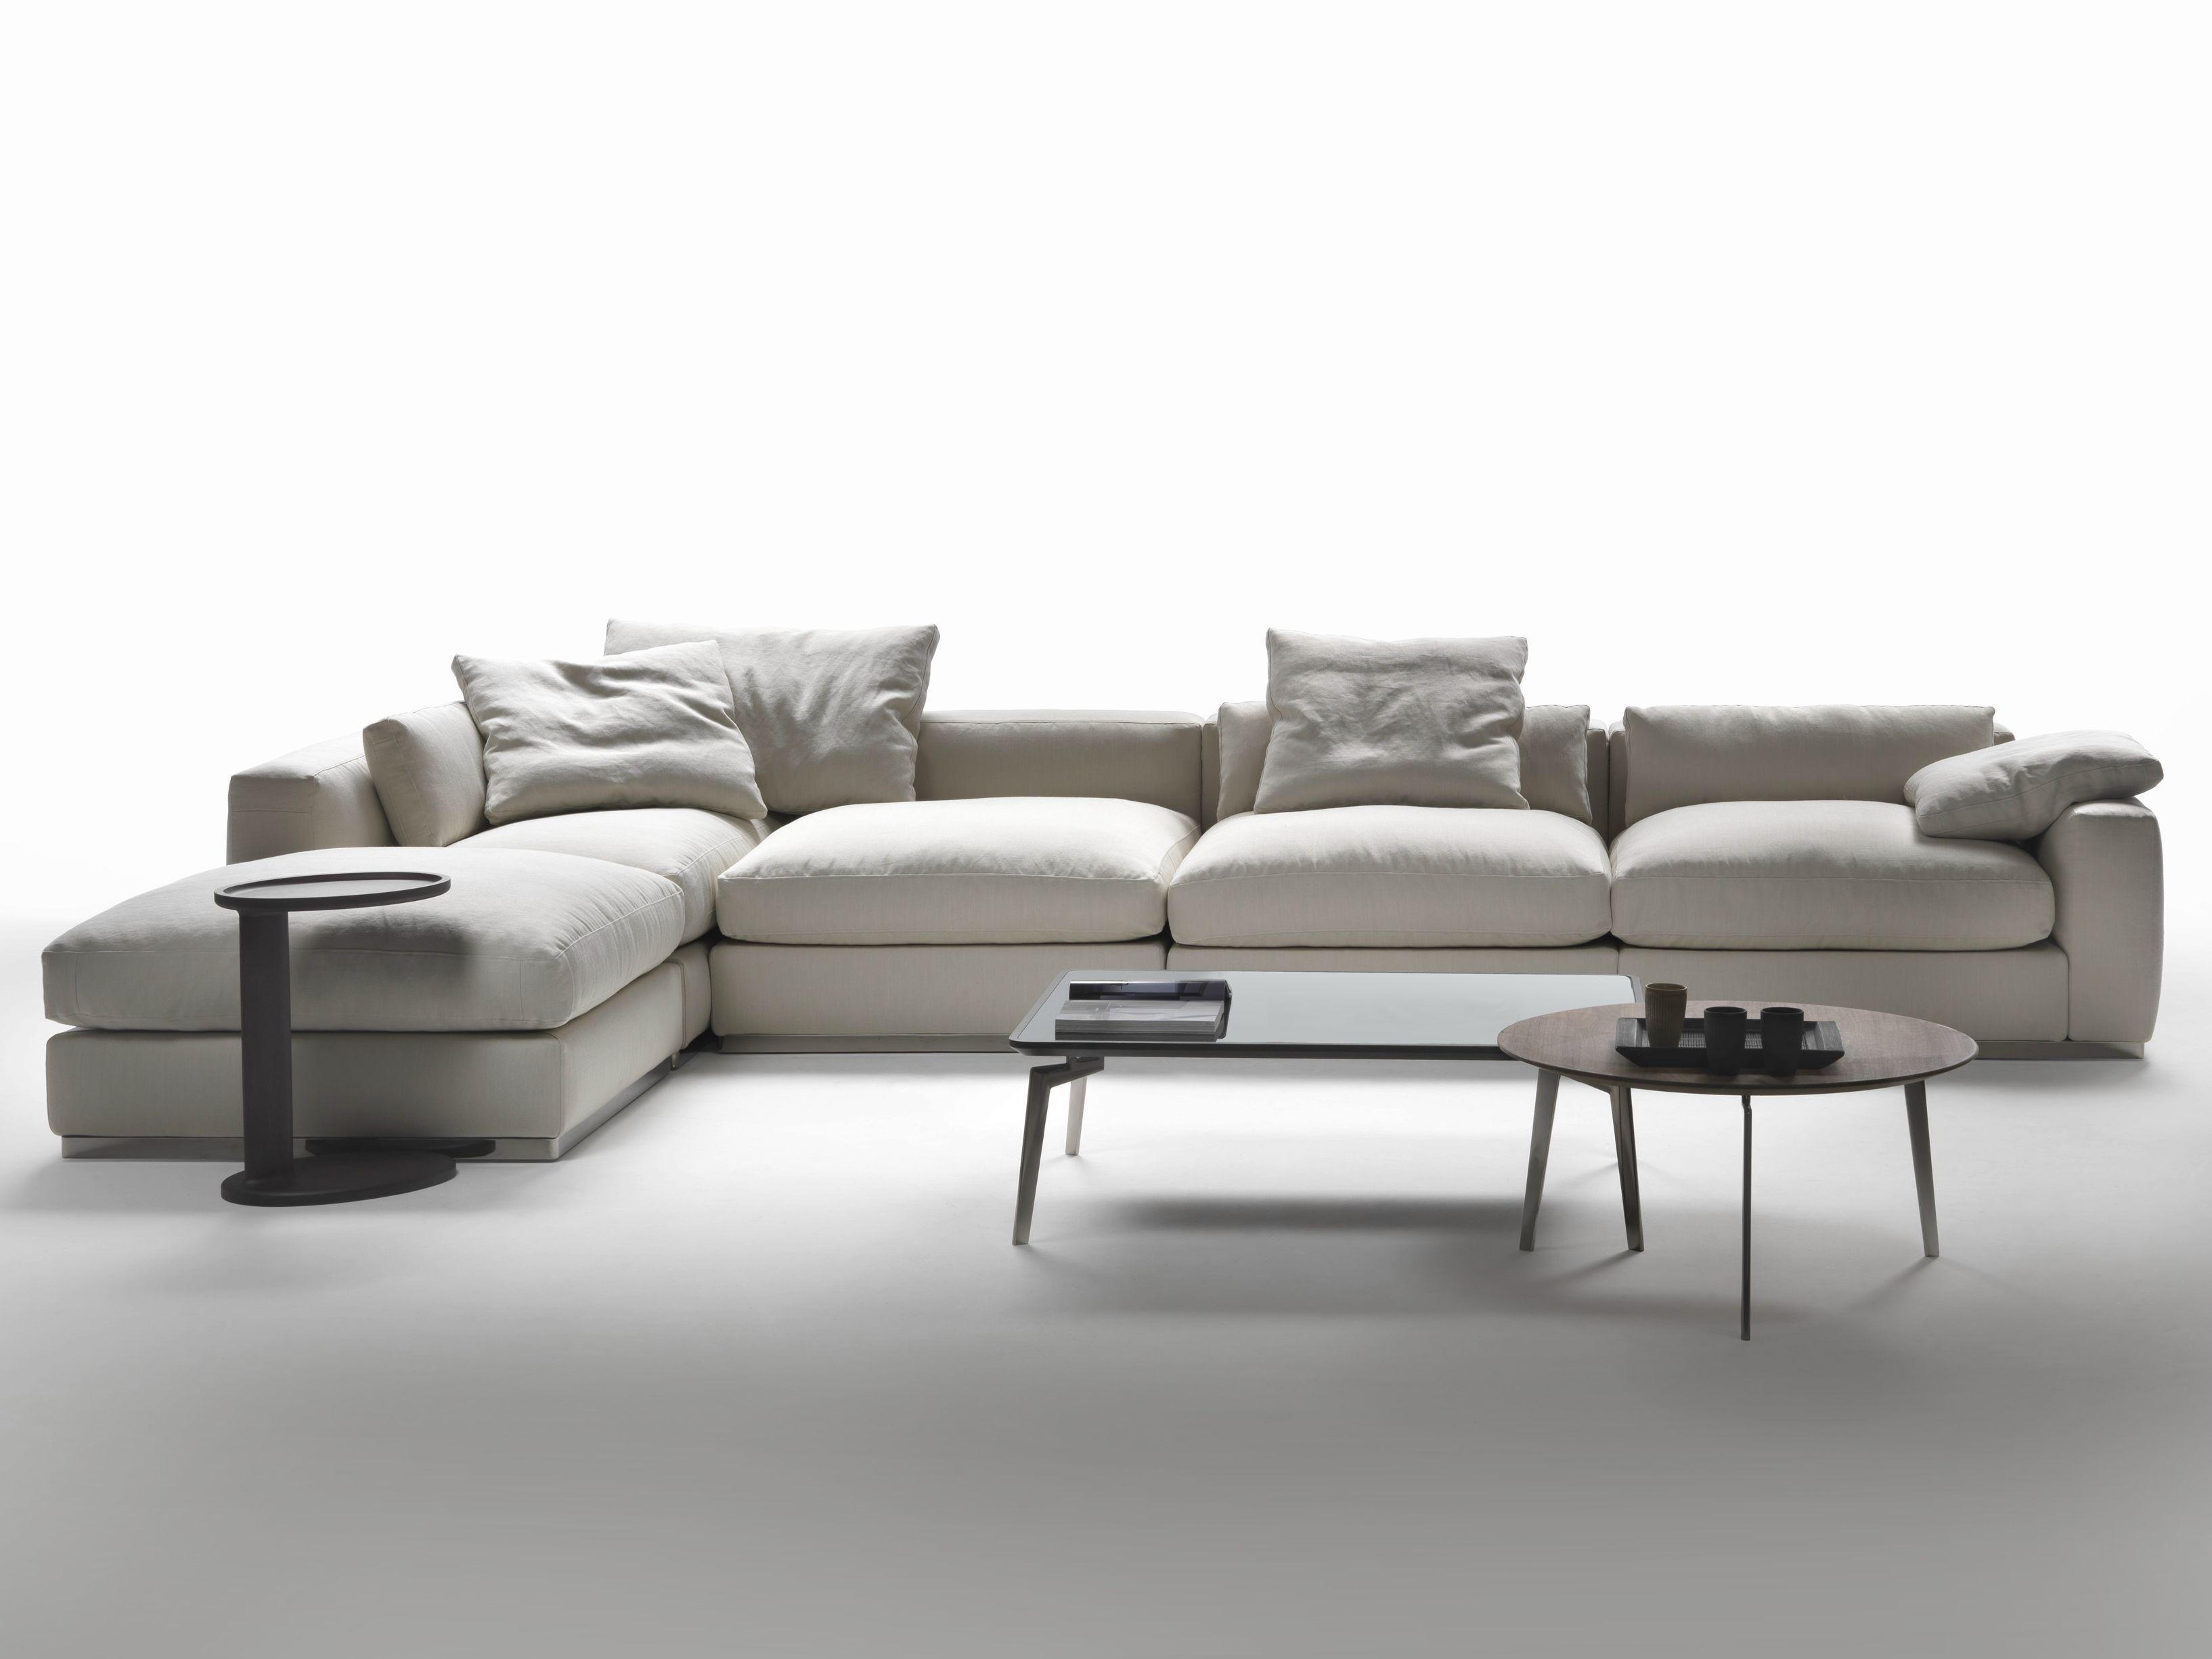 Corner sectional fabric sofa BEAUTY